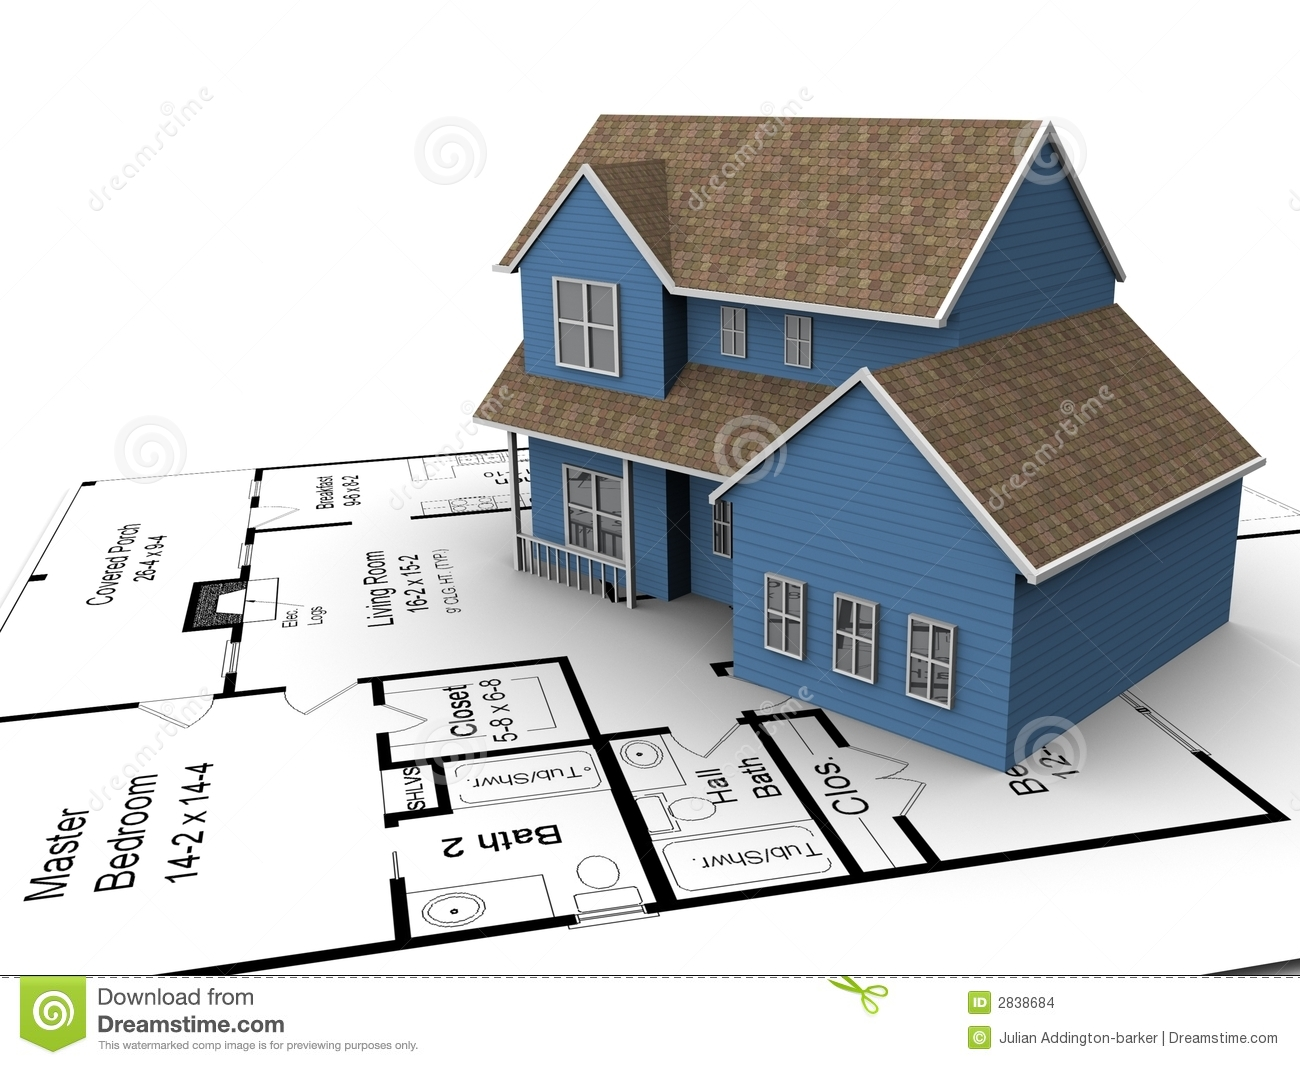 New house plans stock illustration image of design for New houses plans